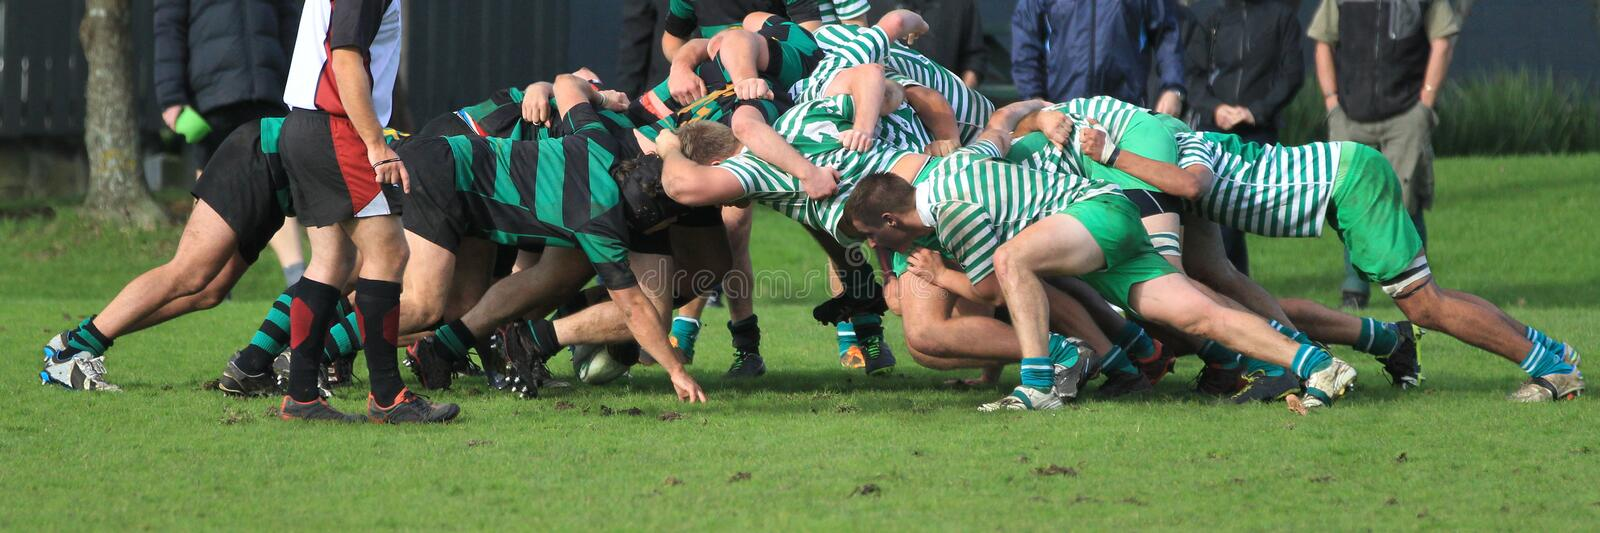 Rugby Football - the scrum royalty free stock photo